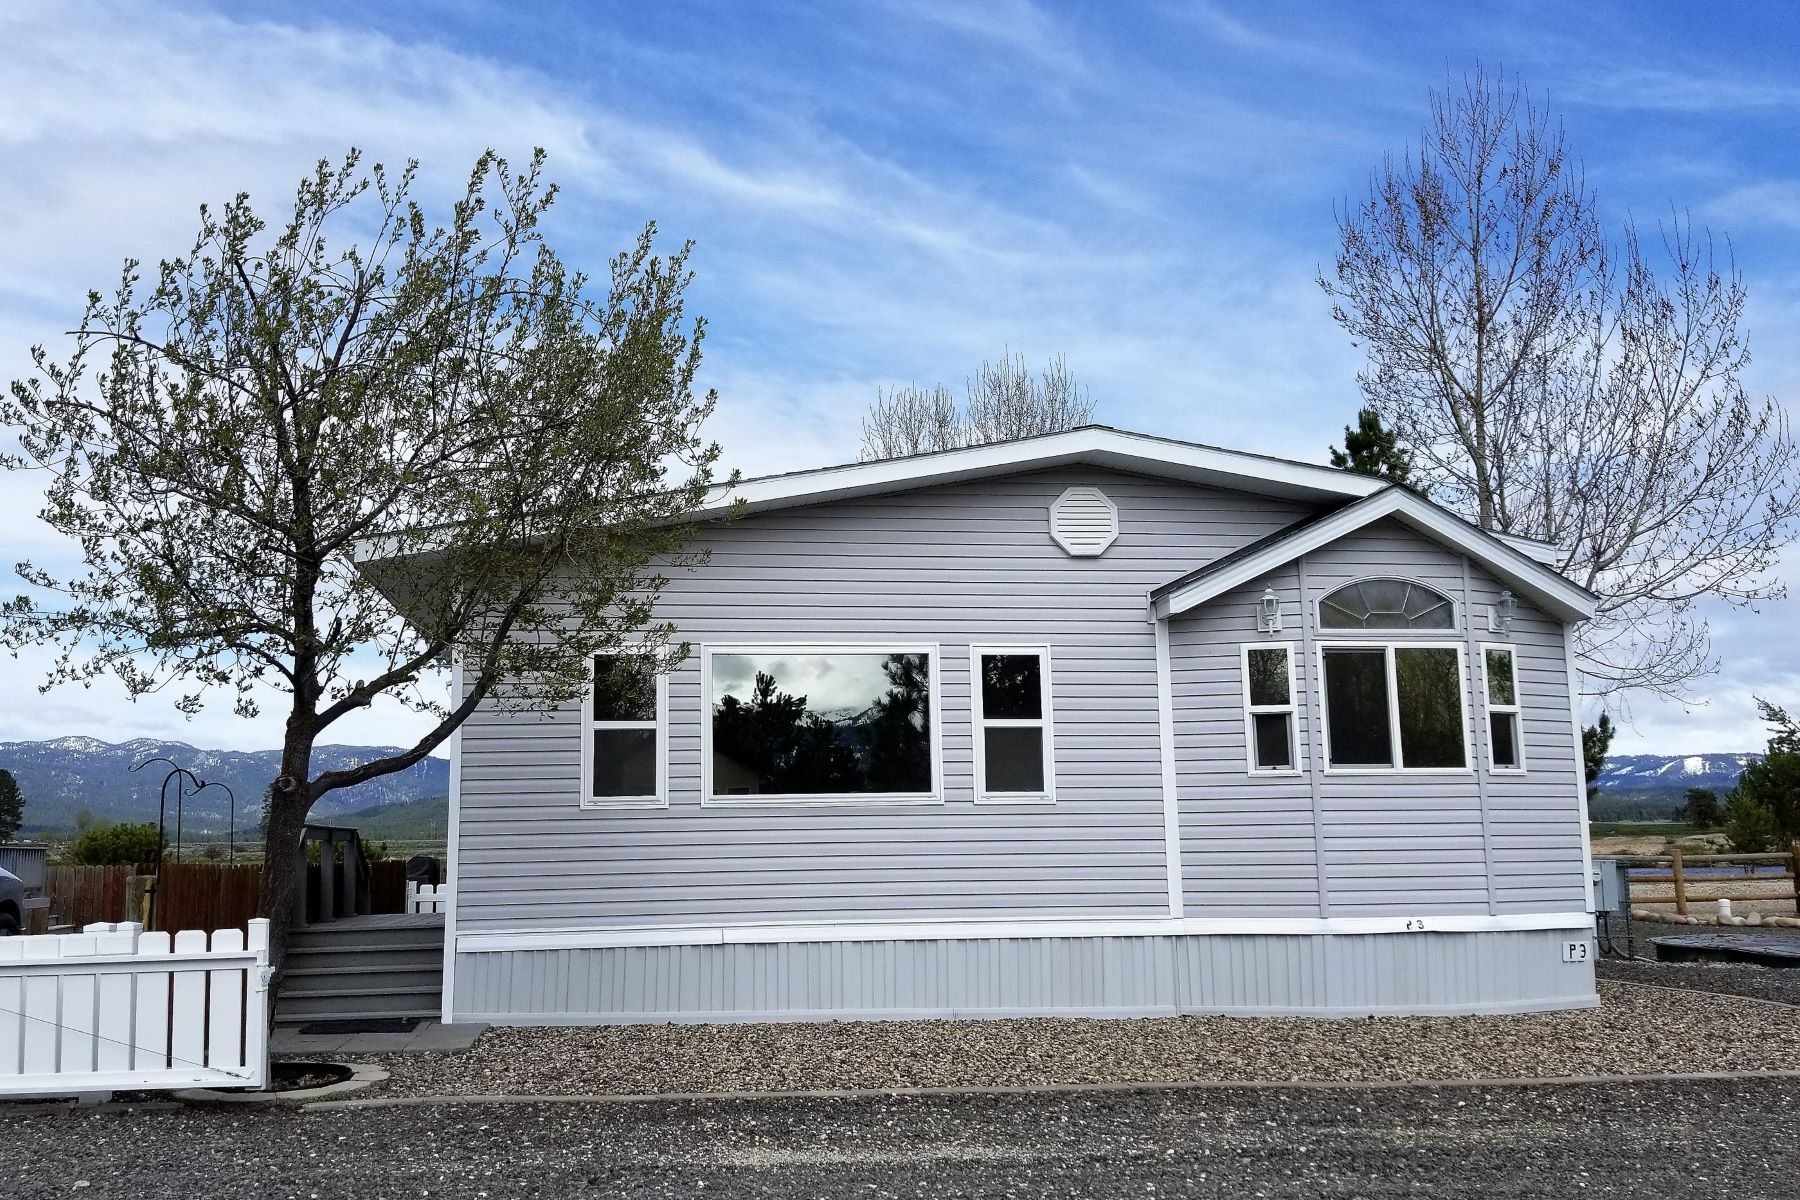 Single Family Home for Sale at 514 Sawyer Street P1 & P3, Cascade 514 Sawyer St P1 & P3 Cascade, Idaho 83611 United States